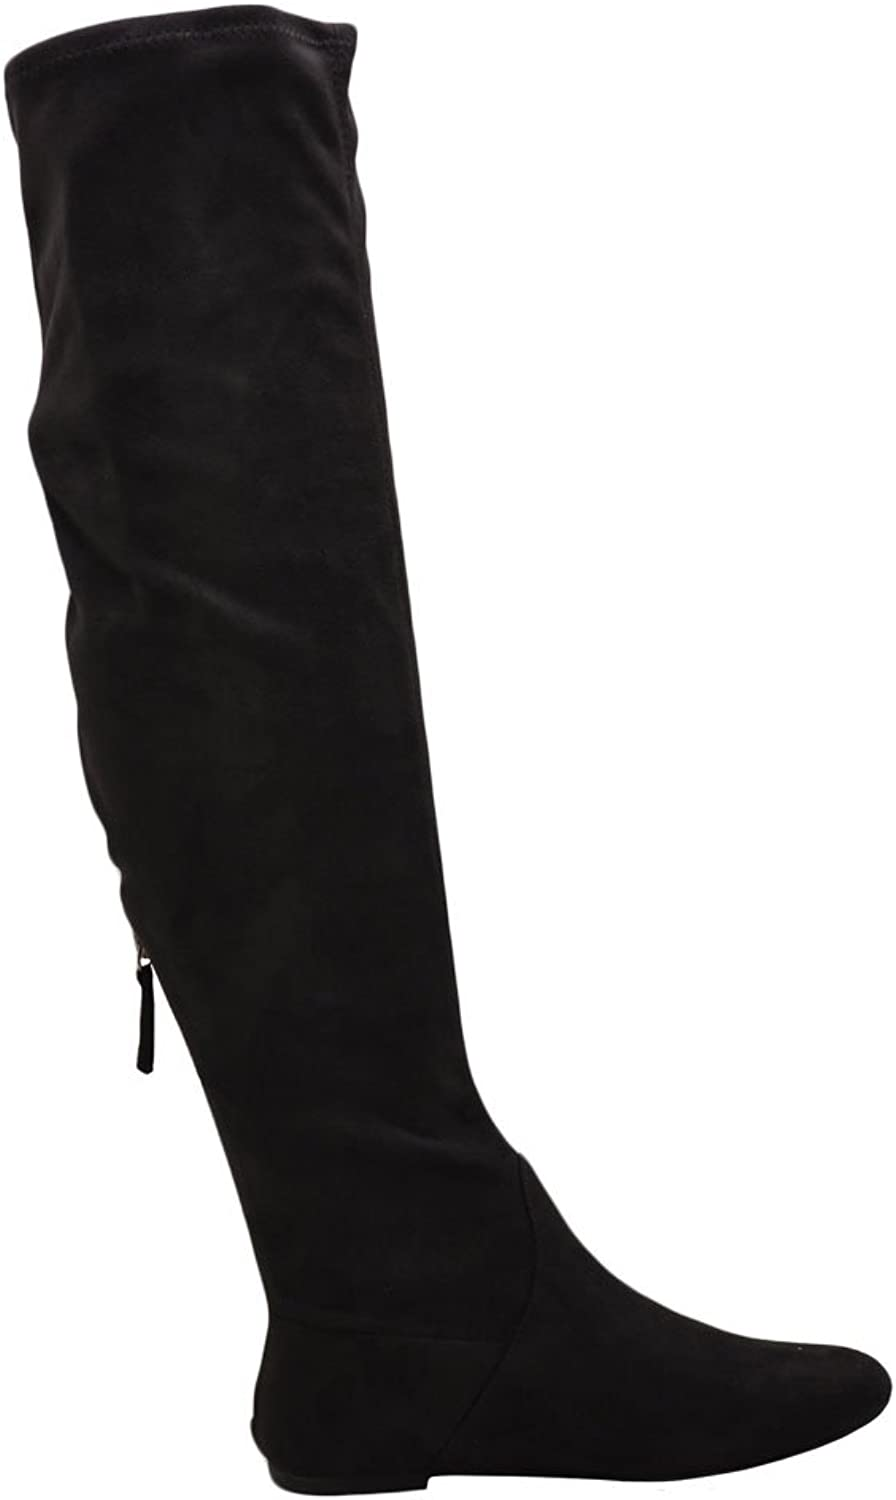 Soda Tone-S Women's Round Toe Knee High Boots